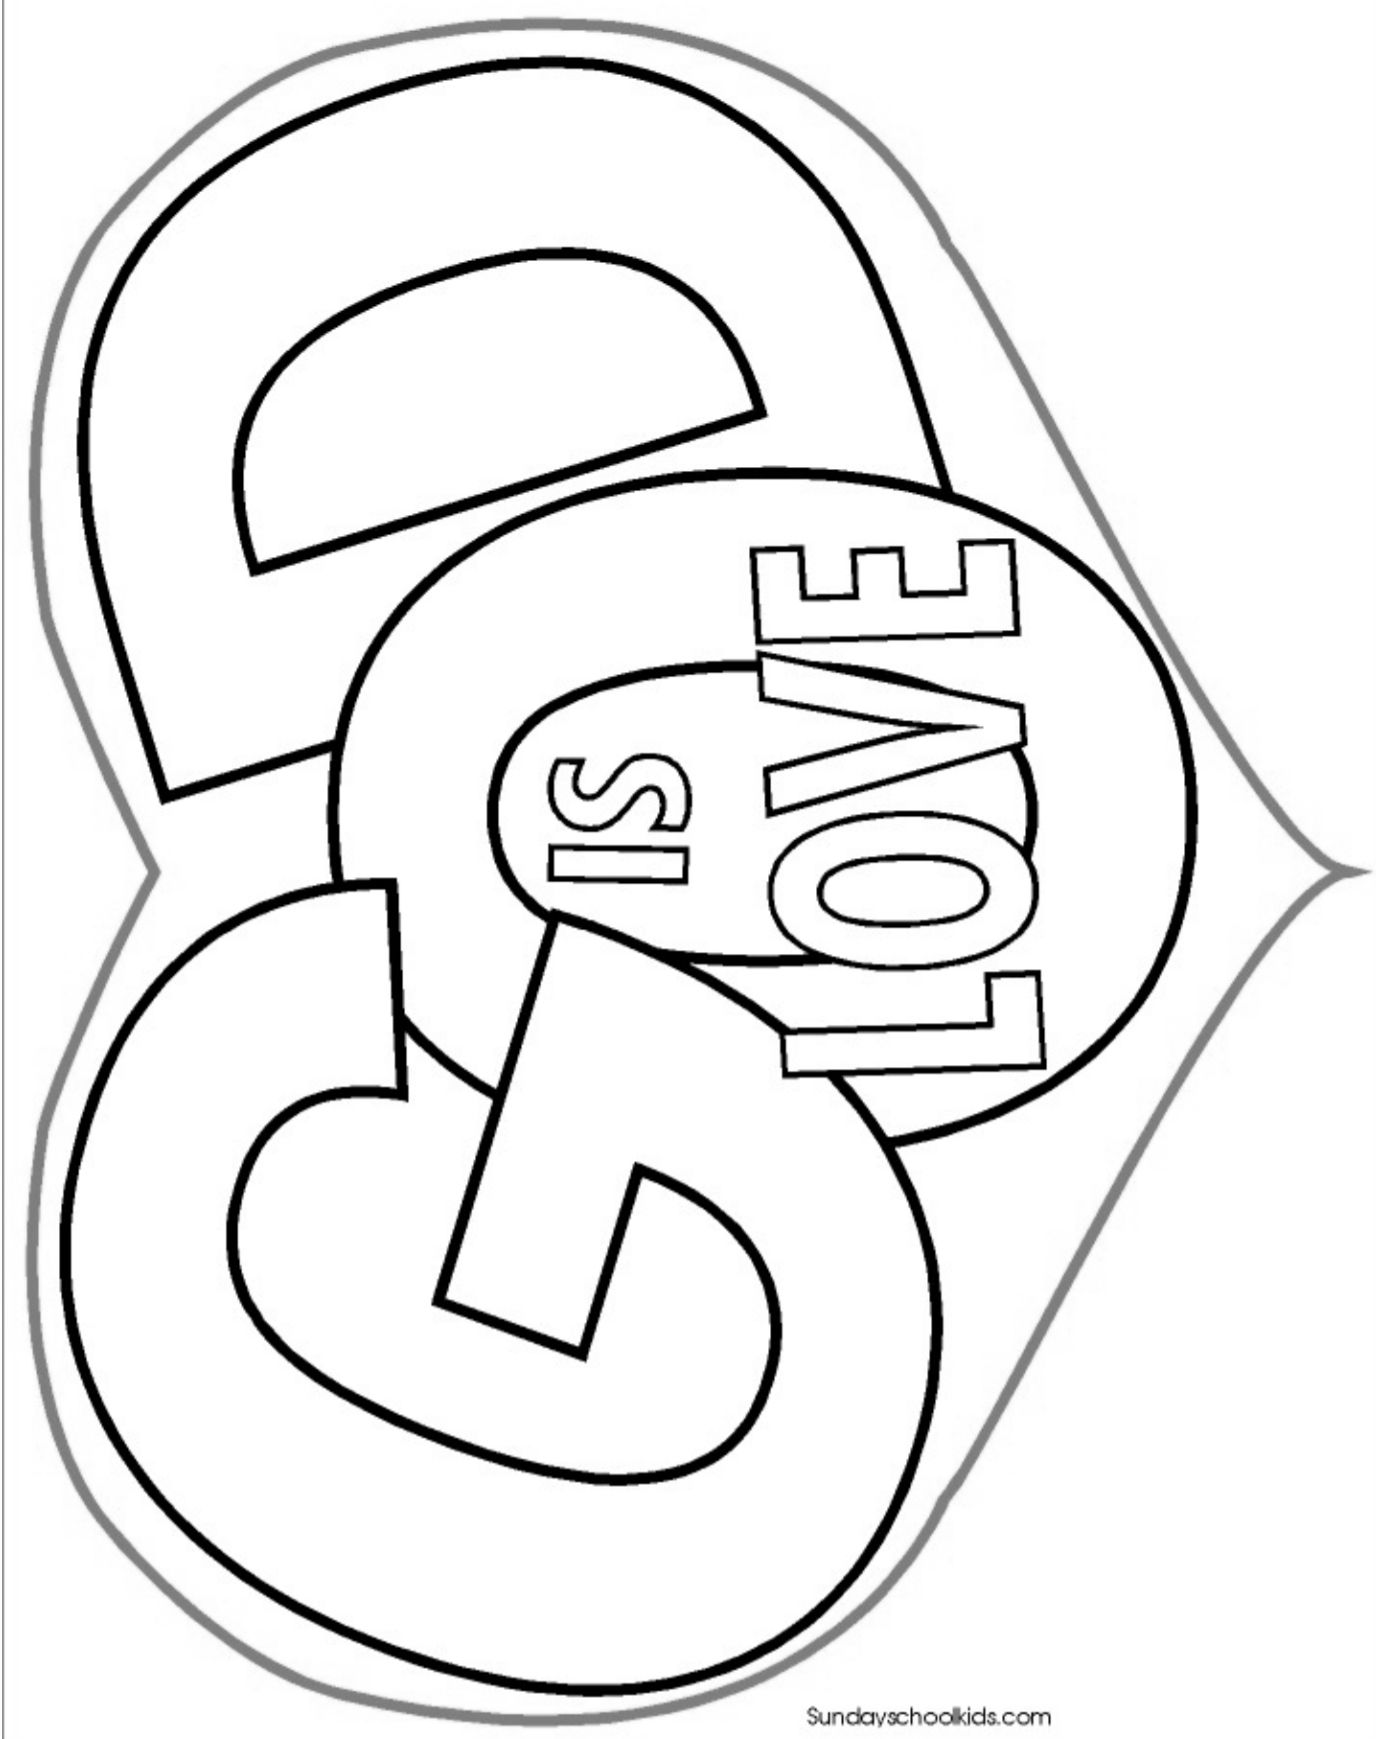 God Is Love Sunday School Coloring Pages Sunday School Coloring Sheets Sunday School Kids